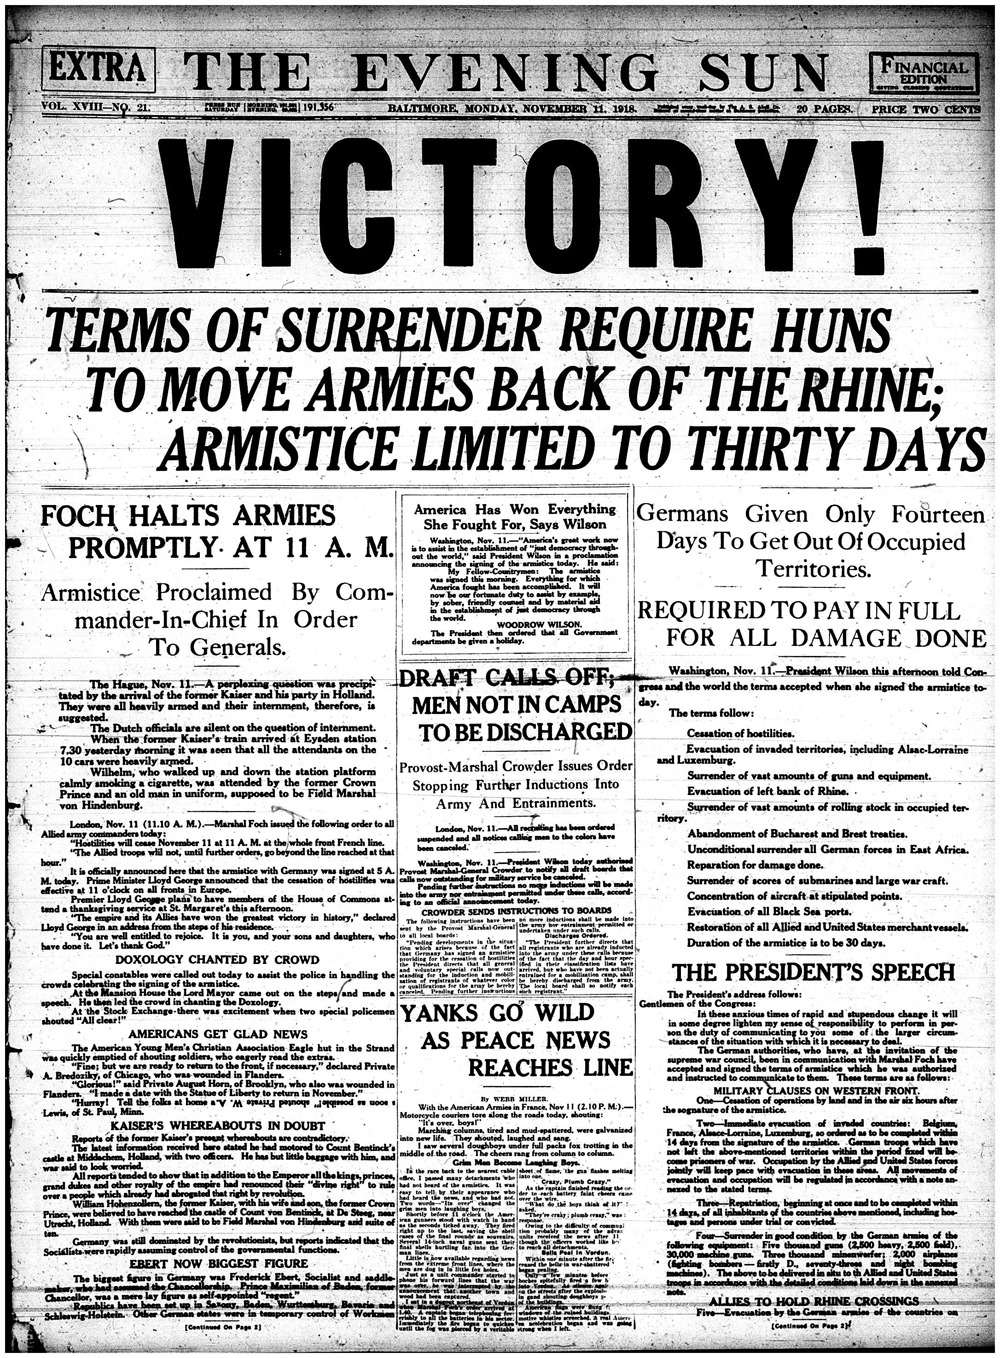 """An image of the front page of the Baltimore Sun, dated November 11, 1918. The headline says """"Victory!"""""""